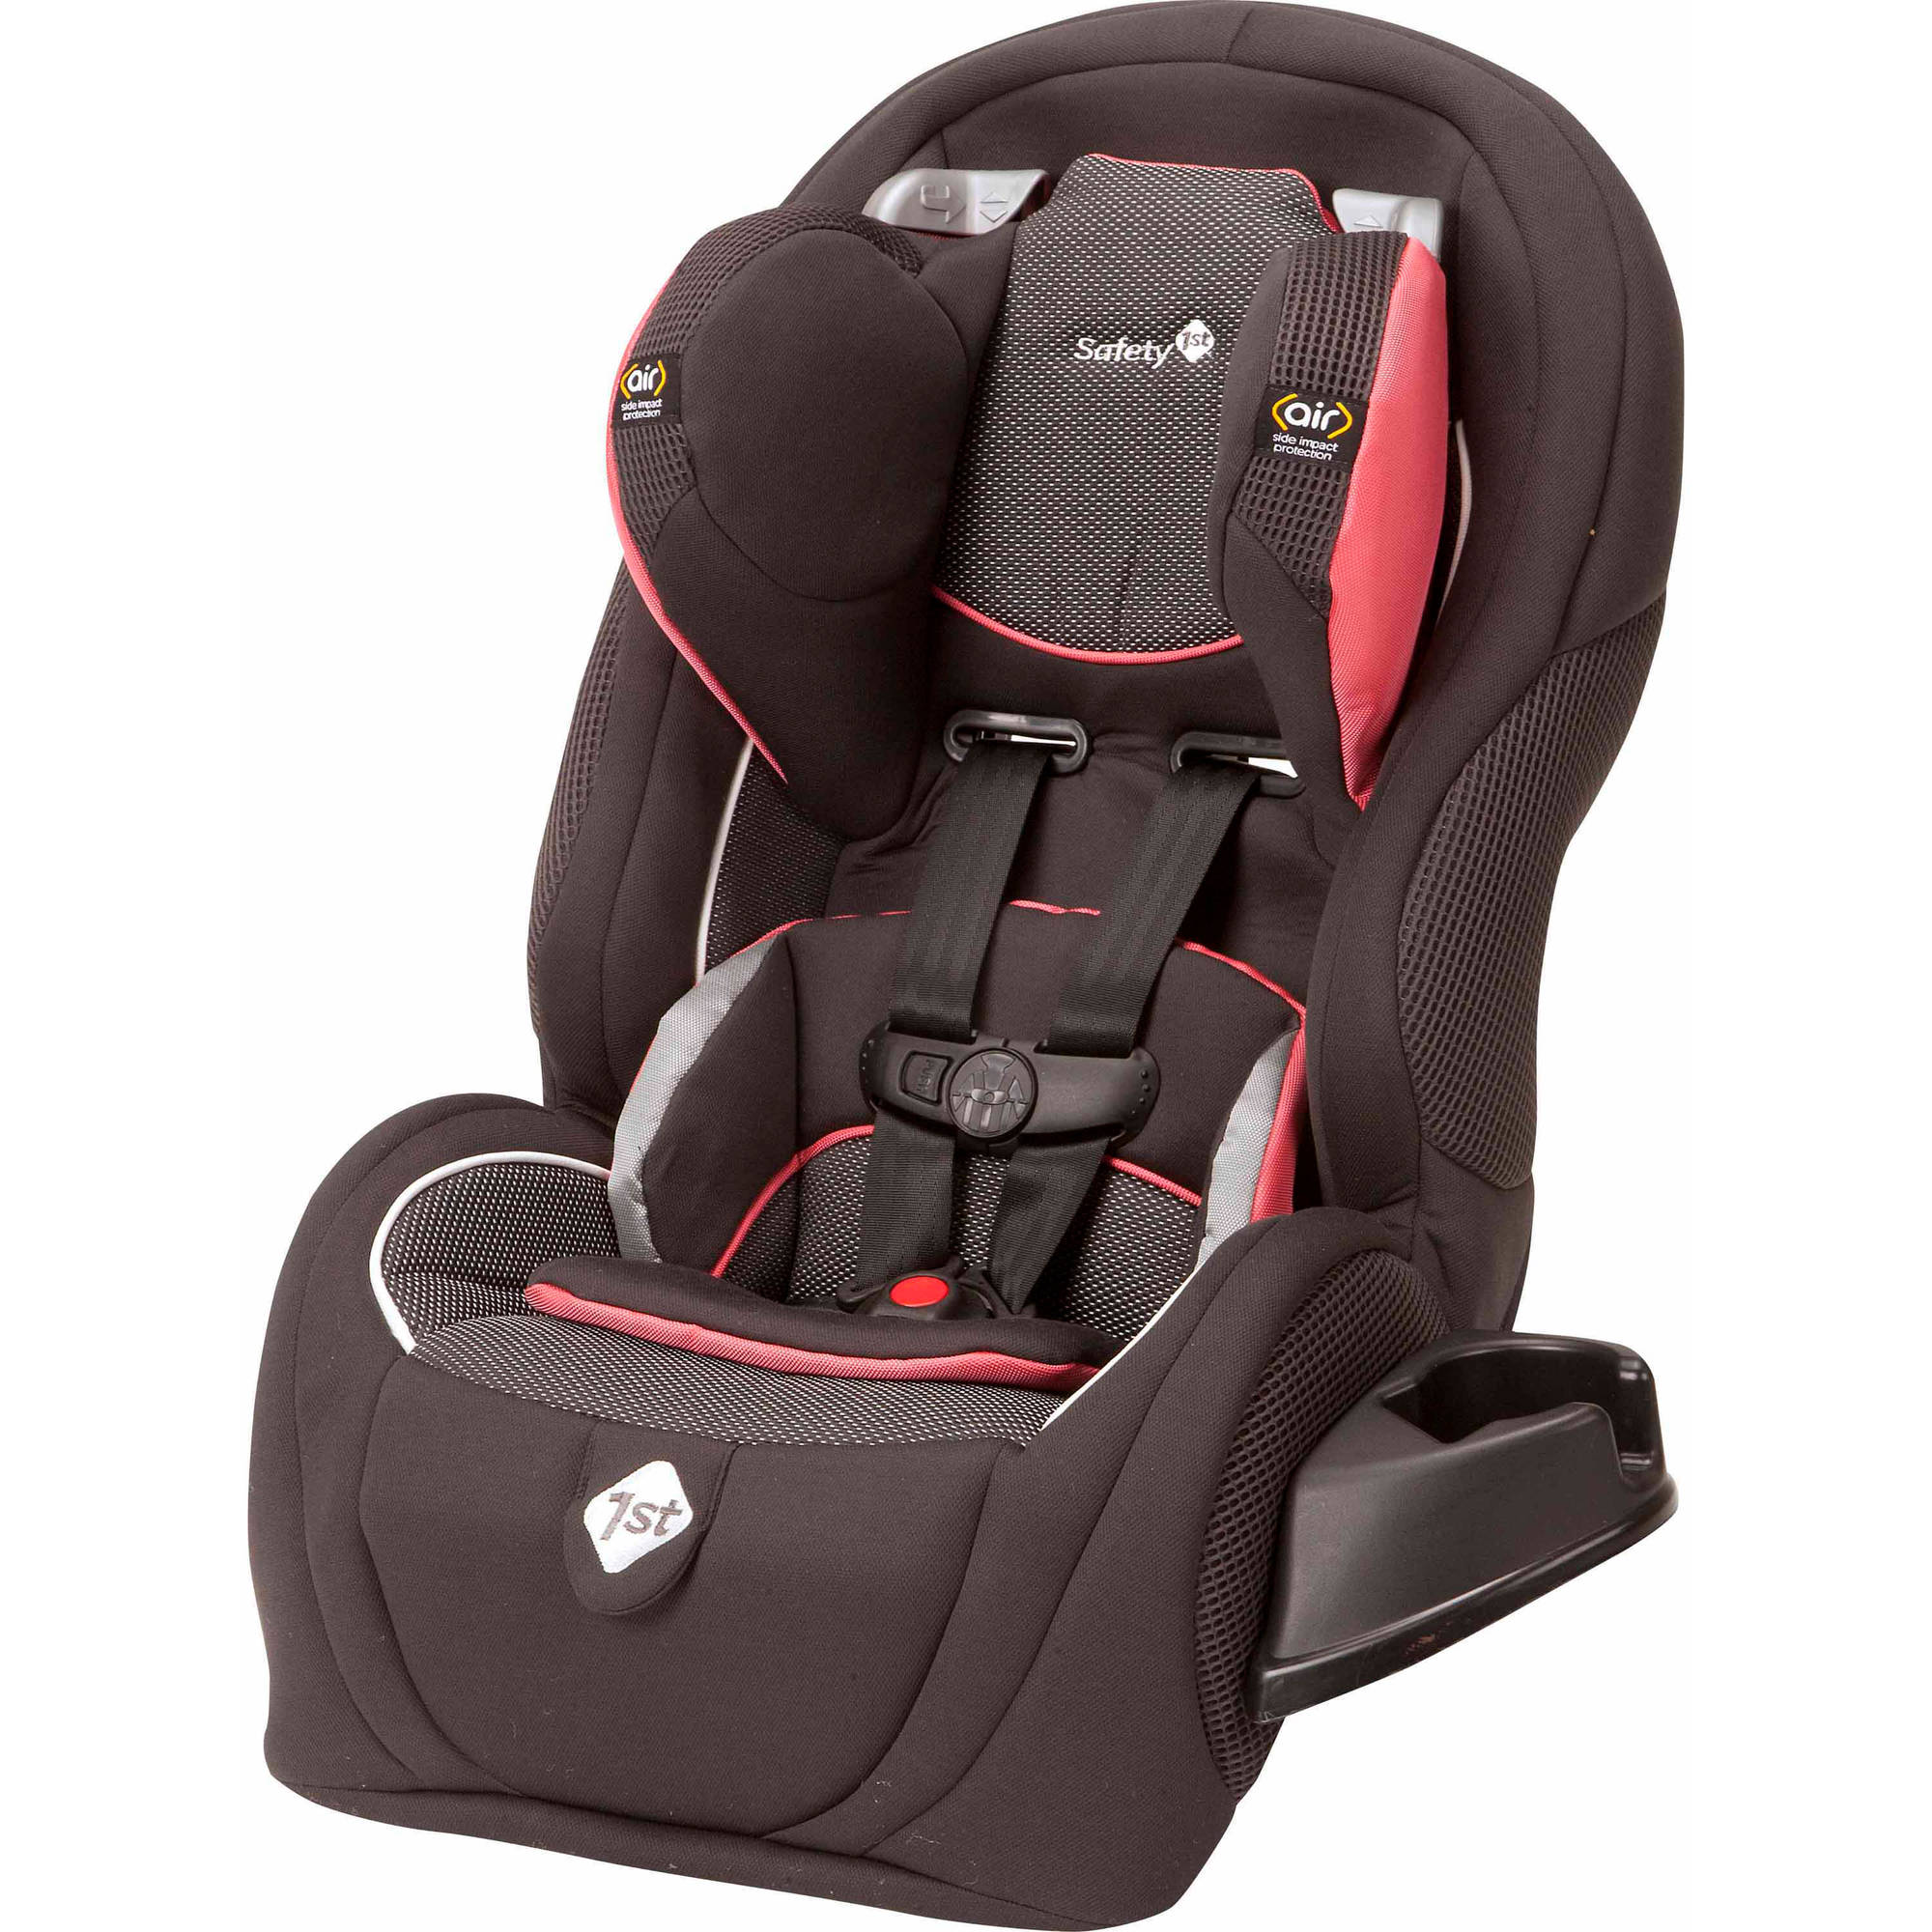 Safety 1st 2015 Complete Air 65 Convertible Baby Car Seat CC110DFH